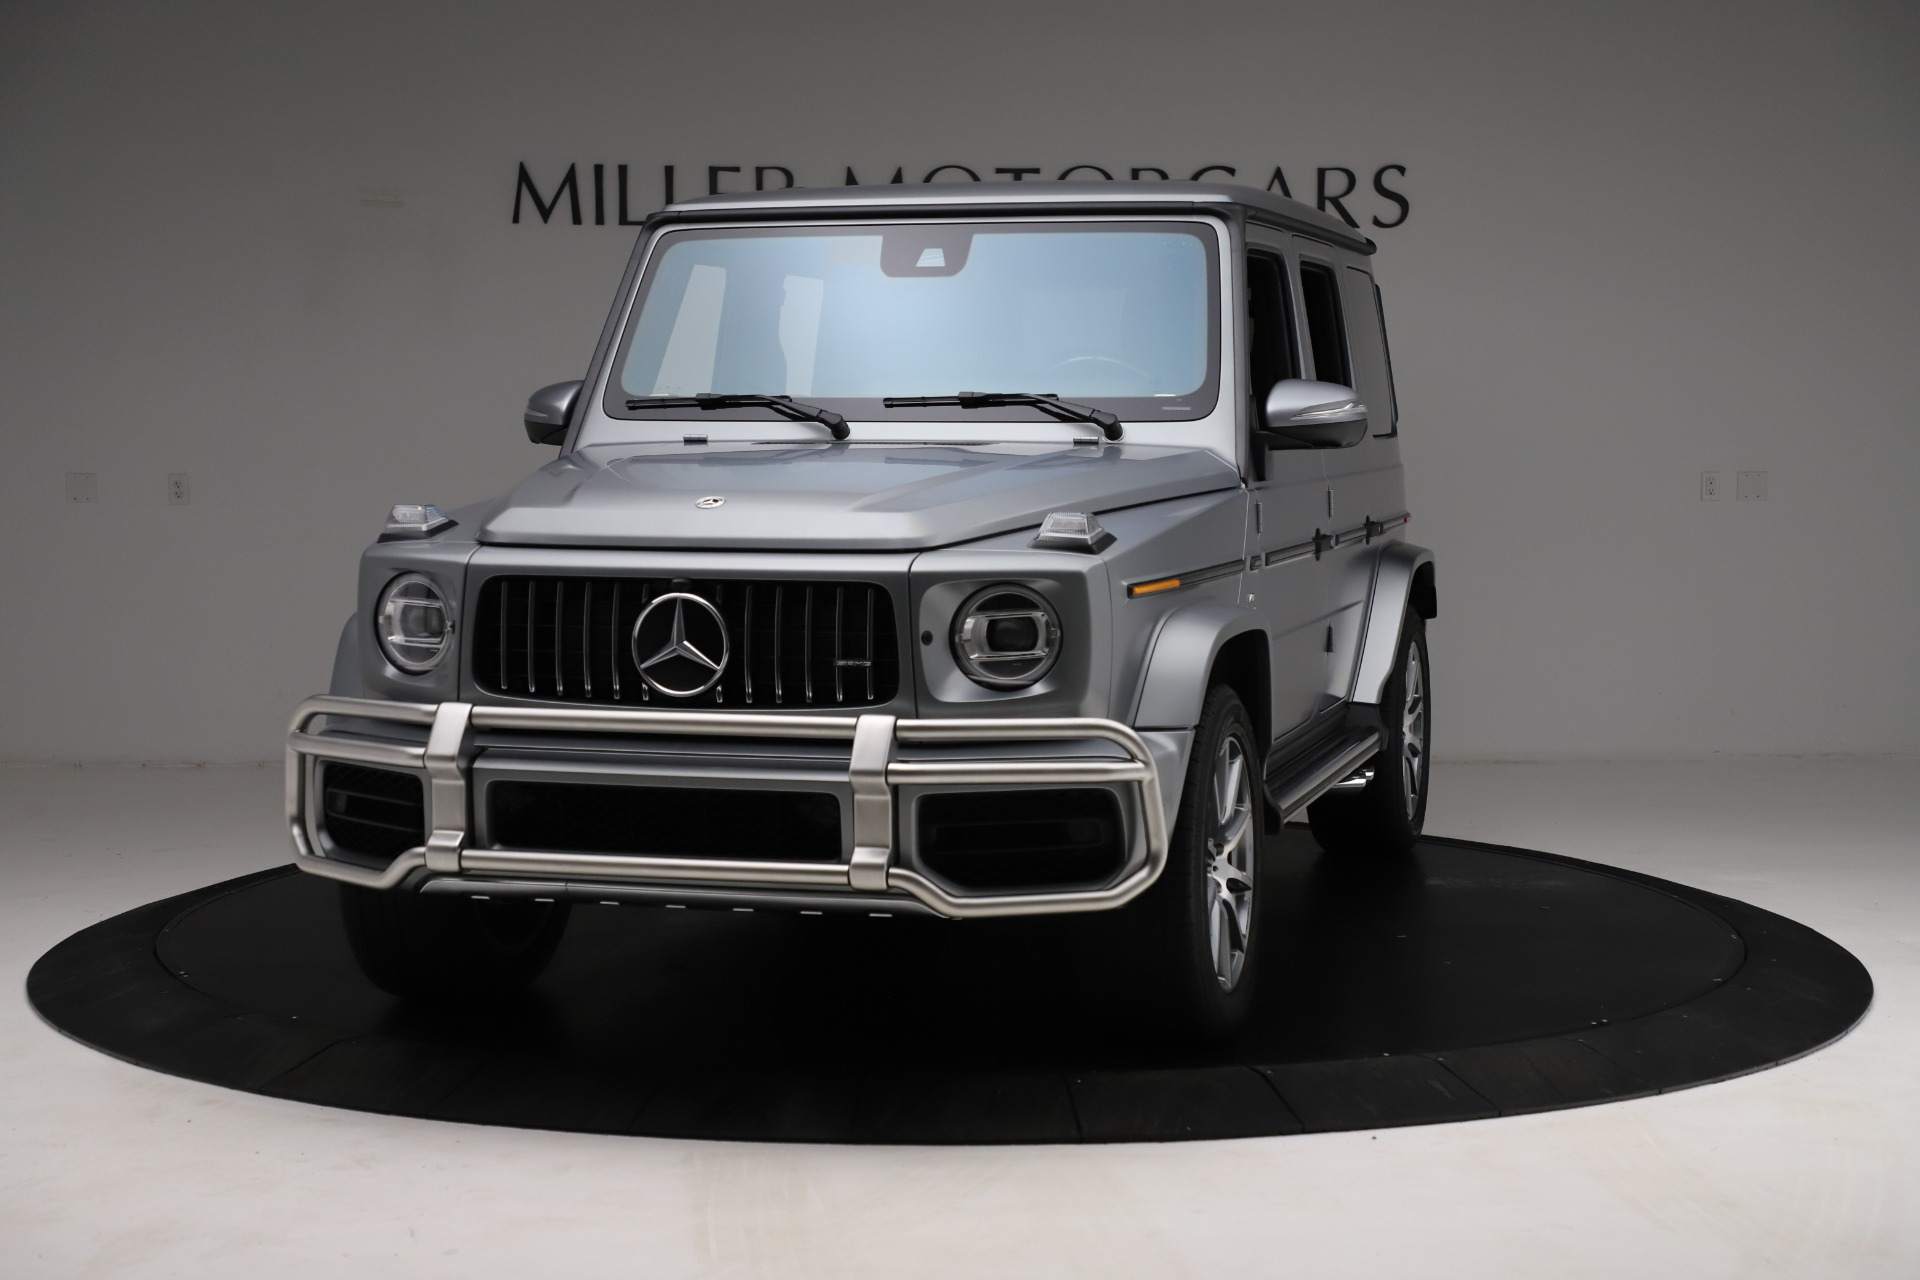 Used 2021 Mercedes-Benz G-Class AMG G 63 for sale $219,900 at Rolls-Royce Motor Cars Greenwich in Greenwich CT 06830 1